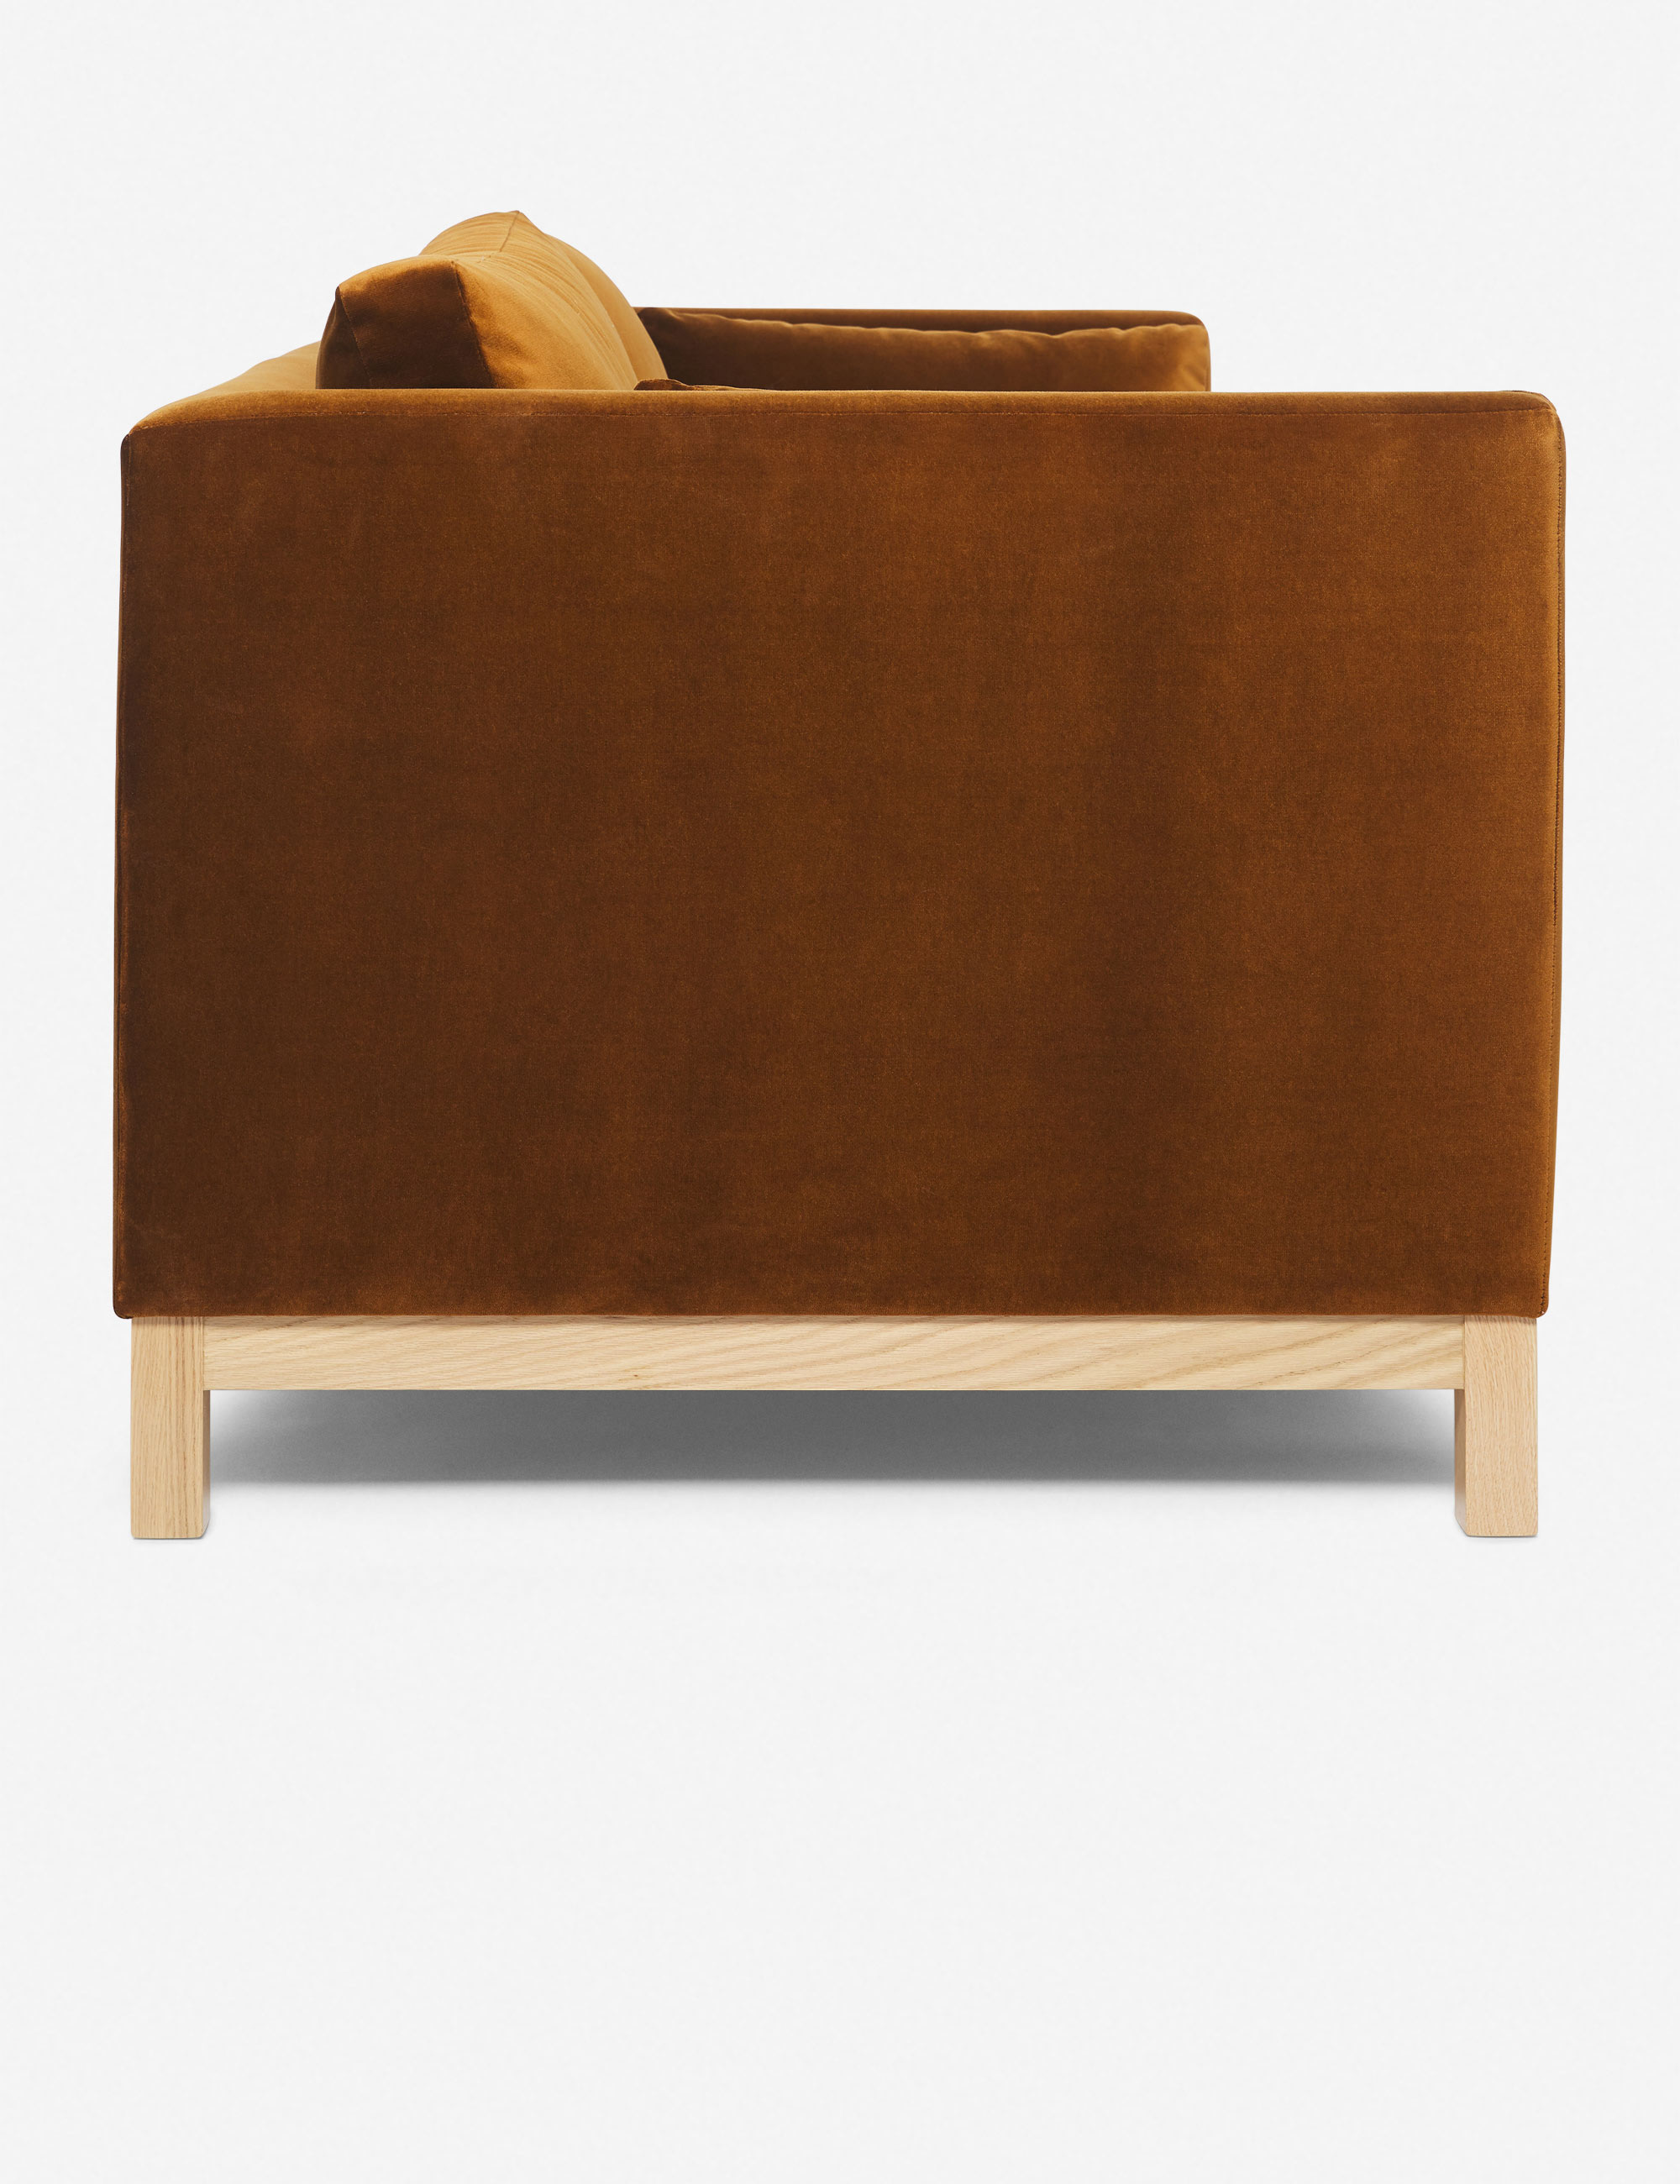 GINNY_MACDONALD_Hollingworth Sofa-Velvet-Cognac-6